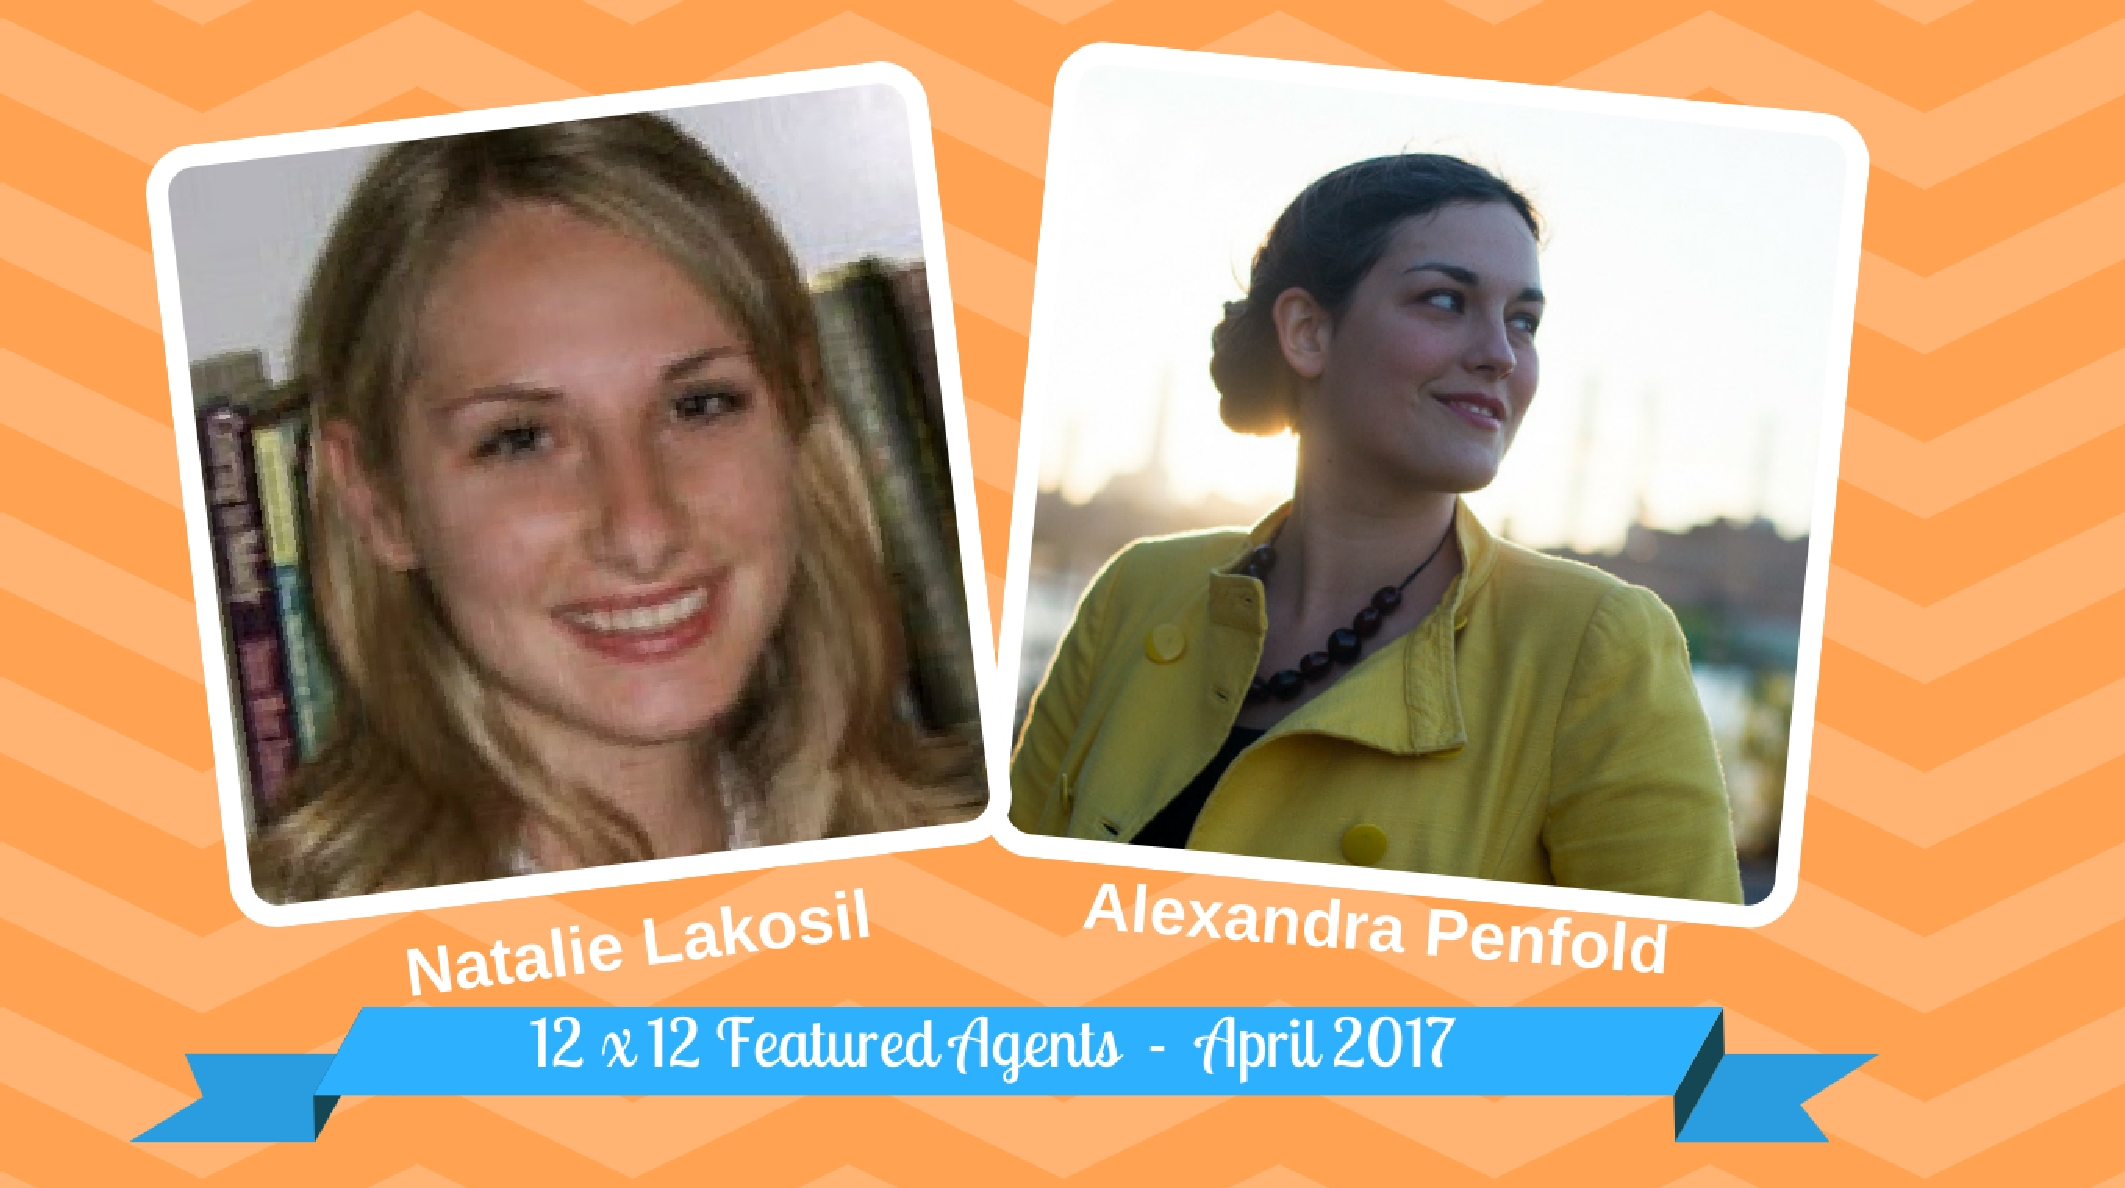 Natalie Lakosil And Alexandra Penfold – 12 X 12 Featured Agents April  2017